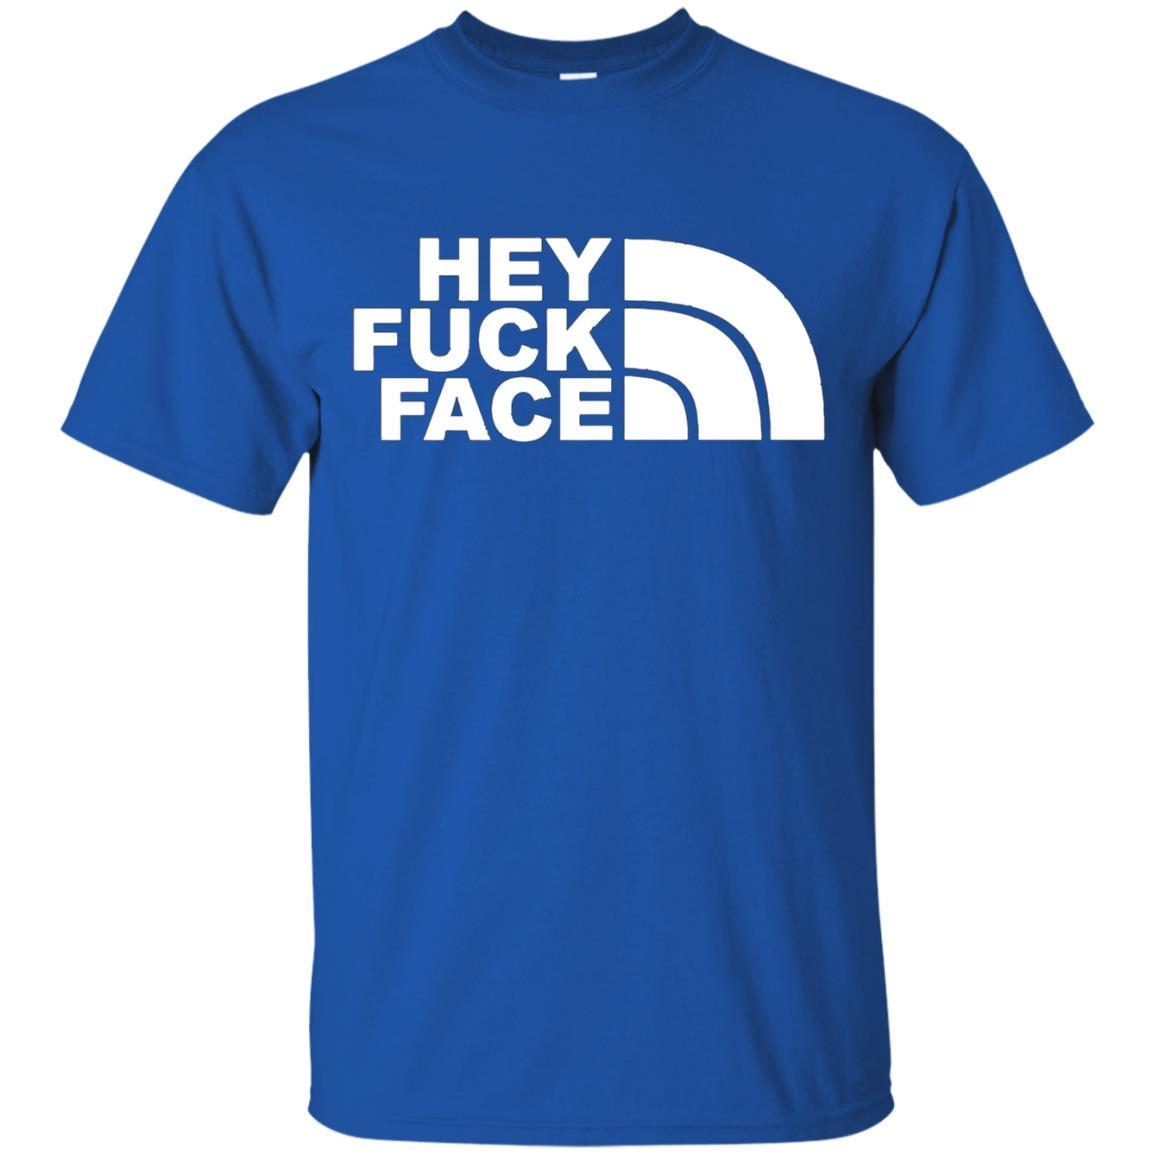 HEY FUCK FACE T-SHIRT Royal / 5XL